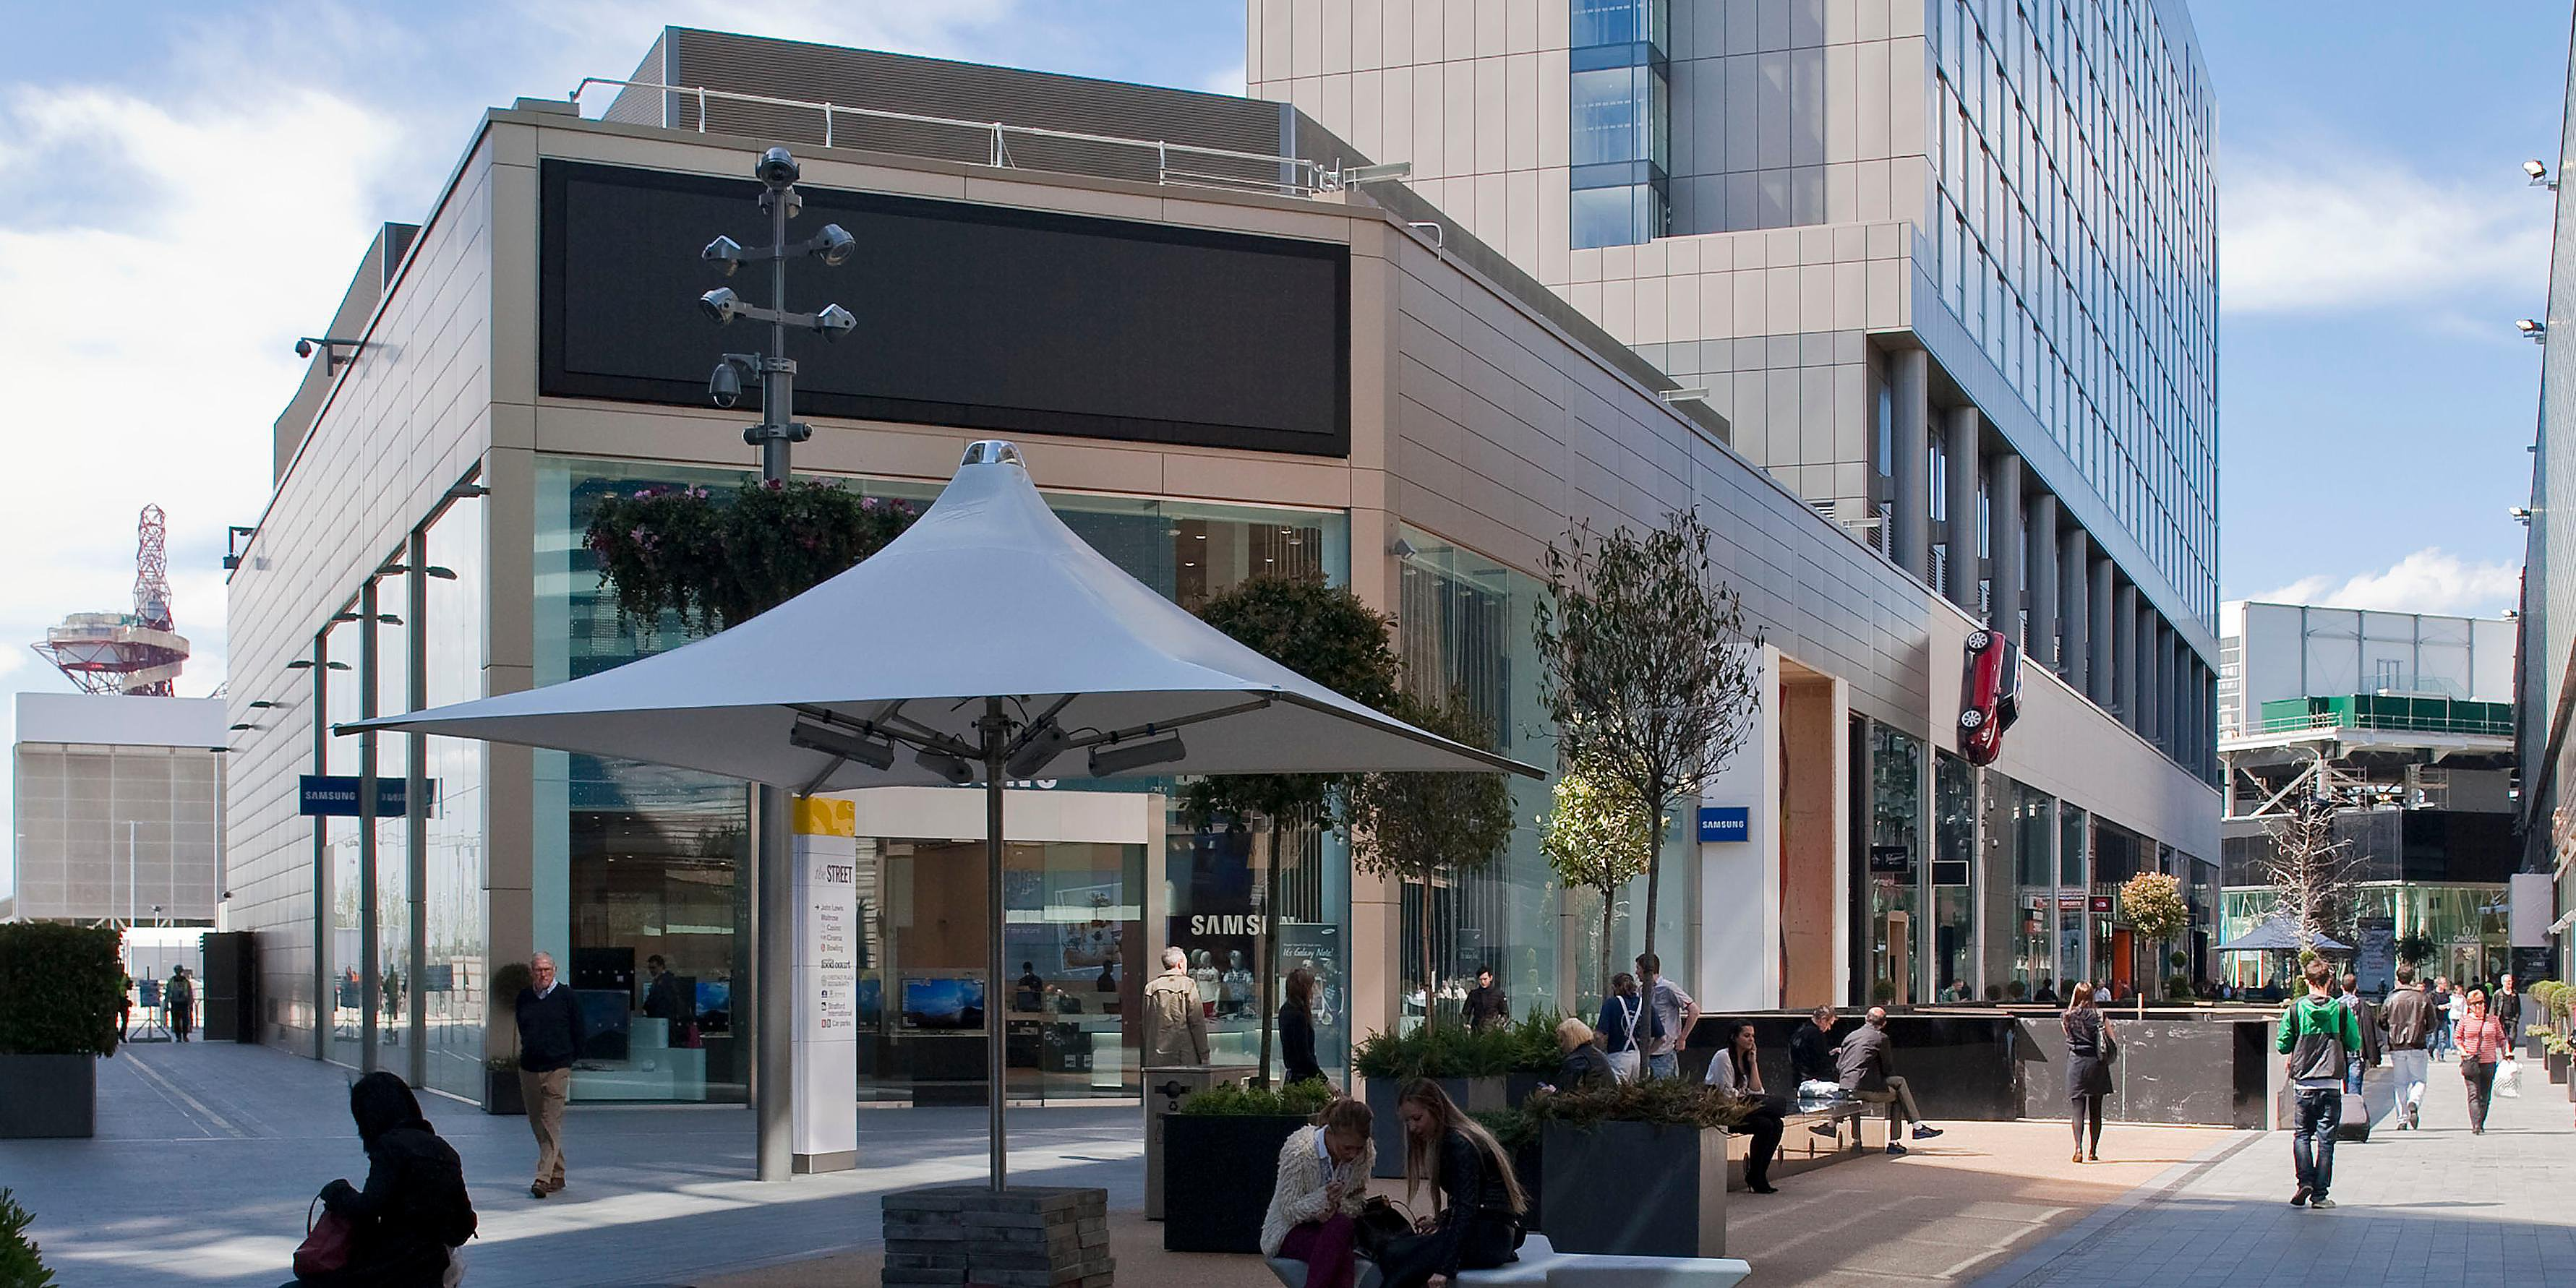 Extended-Stay: Staybridge Suites London - Stratford City